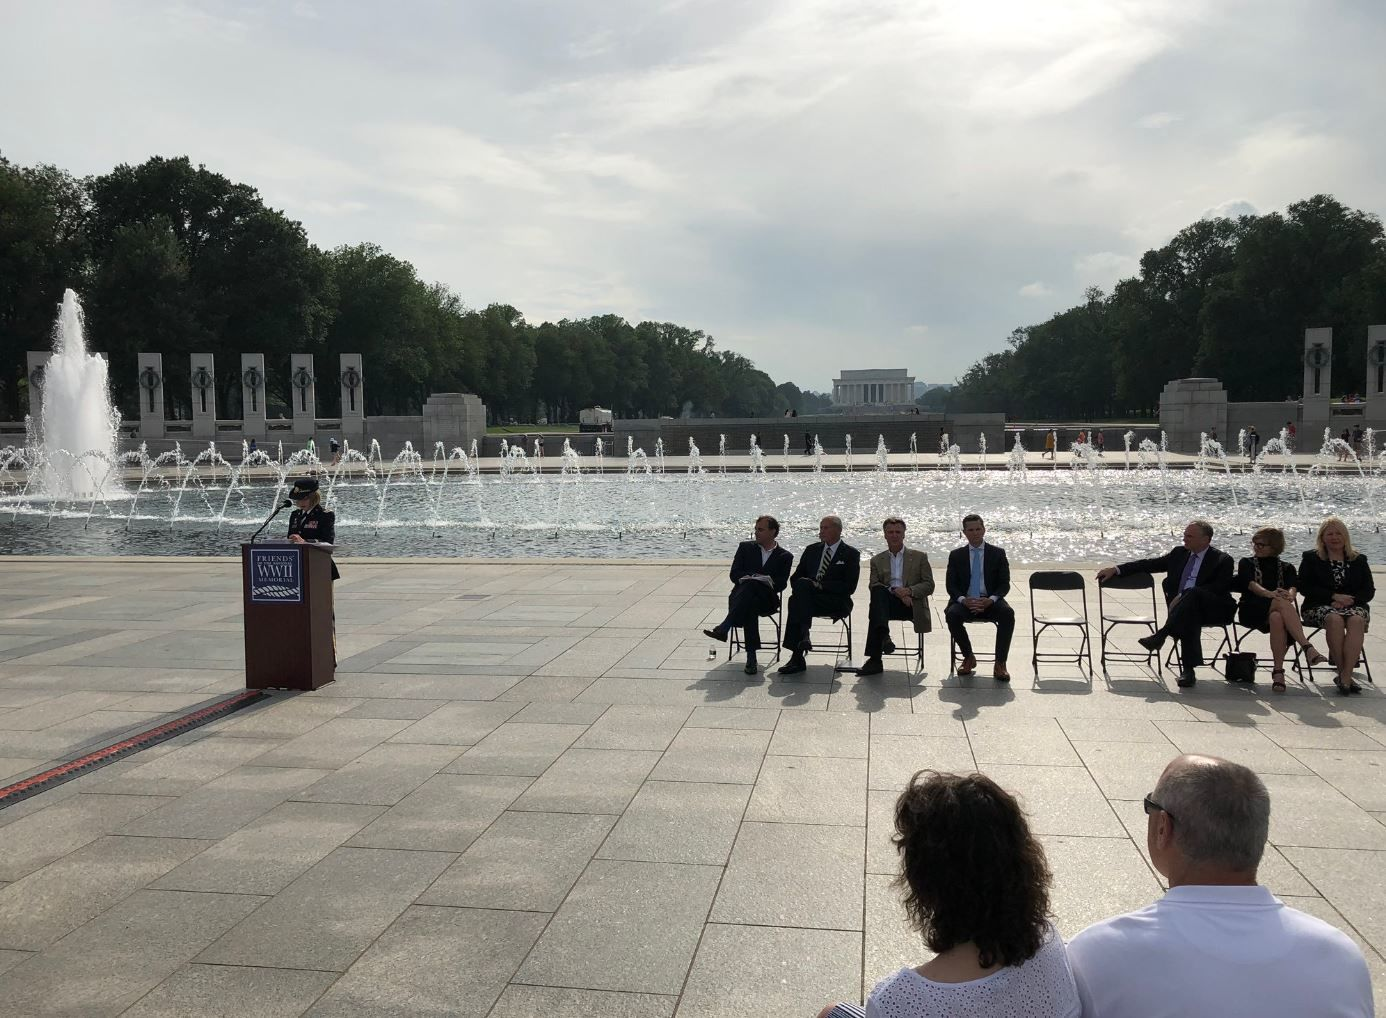 At the National World War II Memorial in D.C., volunteers marked the 75th anniversary of the largest ever military operation by sea -- D-Day -- by saying the names of service members who were lost. (WTOP/Michelle Basch)